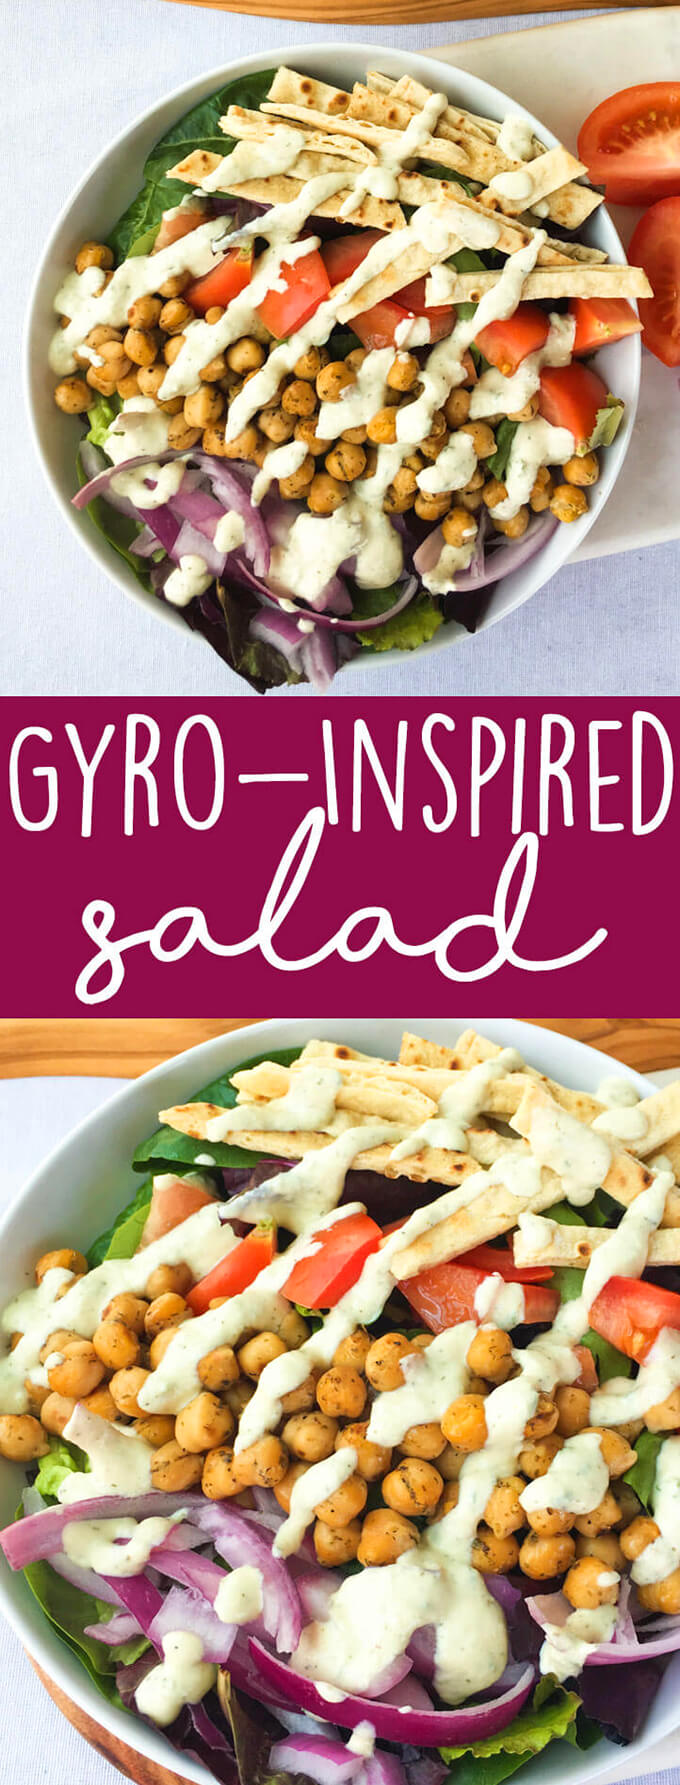 Vegan Gyro Salad Recipe: This veggie-packed gyro-inspired salad is topped with greek-spiced chickpeas, crispy baked flatbread strips for crunch, and a creamy vegan tzatziki sauce. Healthy vegan salad recipes don't have to be boring!